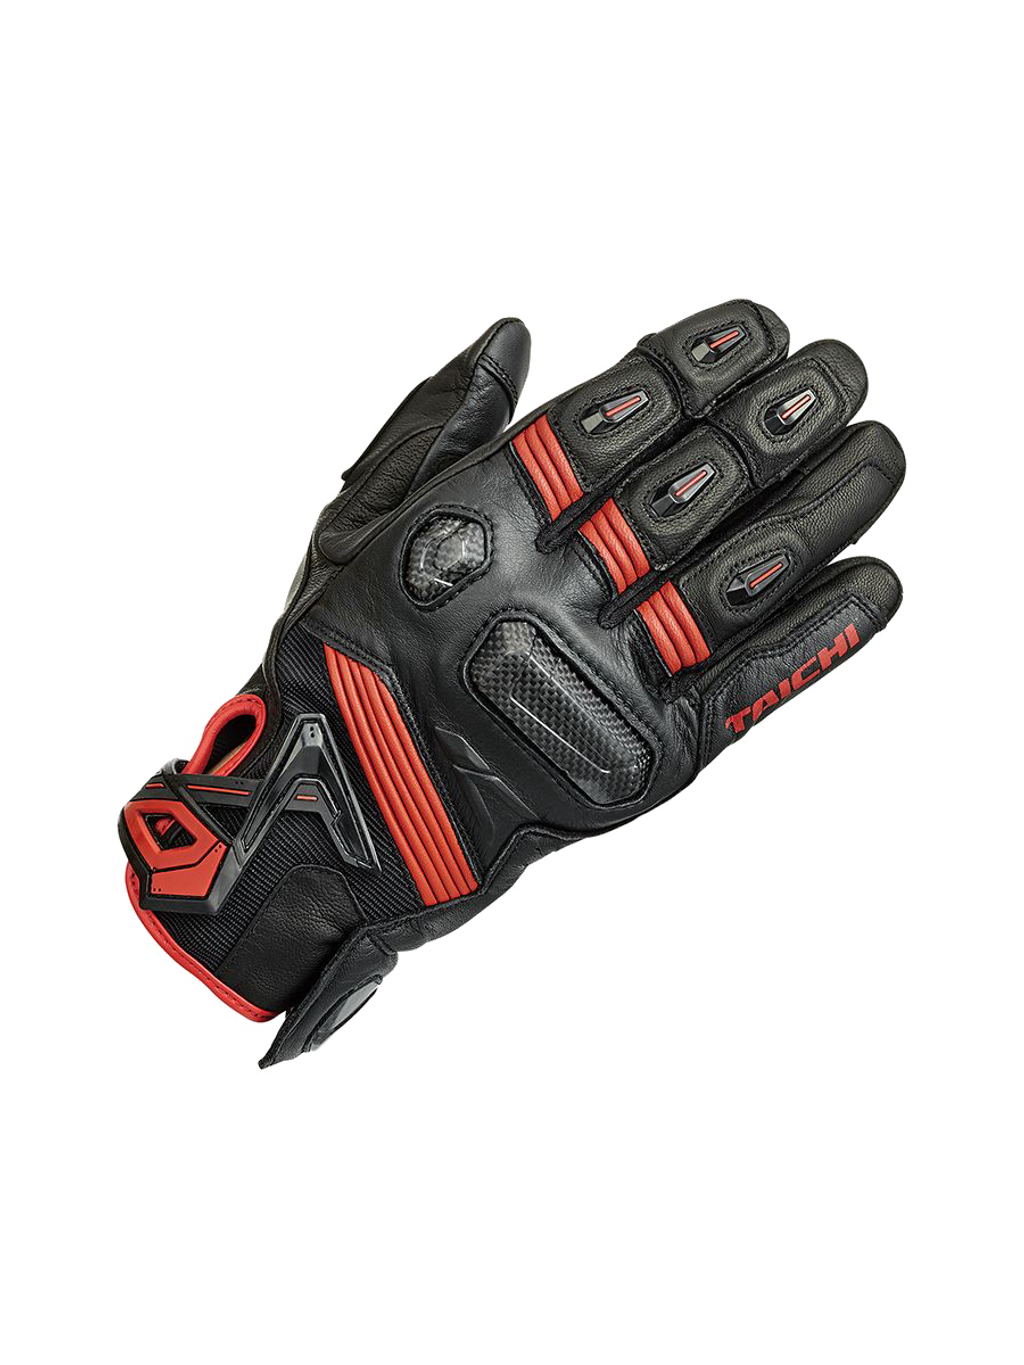 14 RS TAICHI RST441 RAPTOR LEATHER GLOVE black red.png